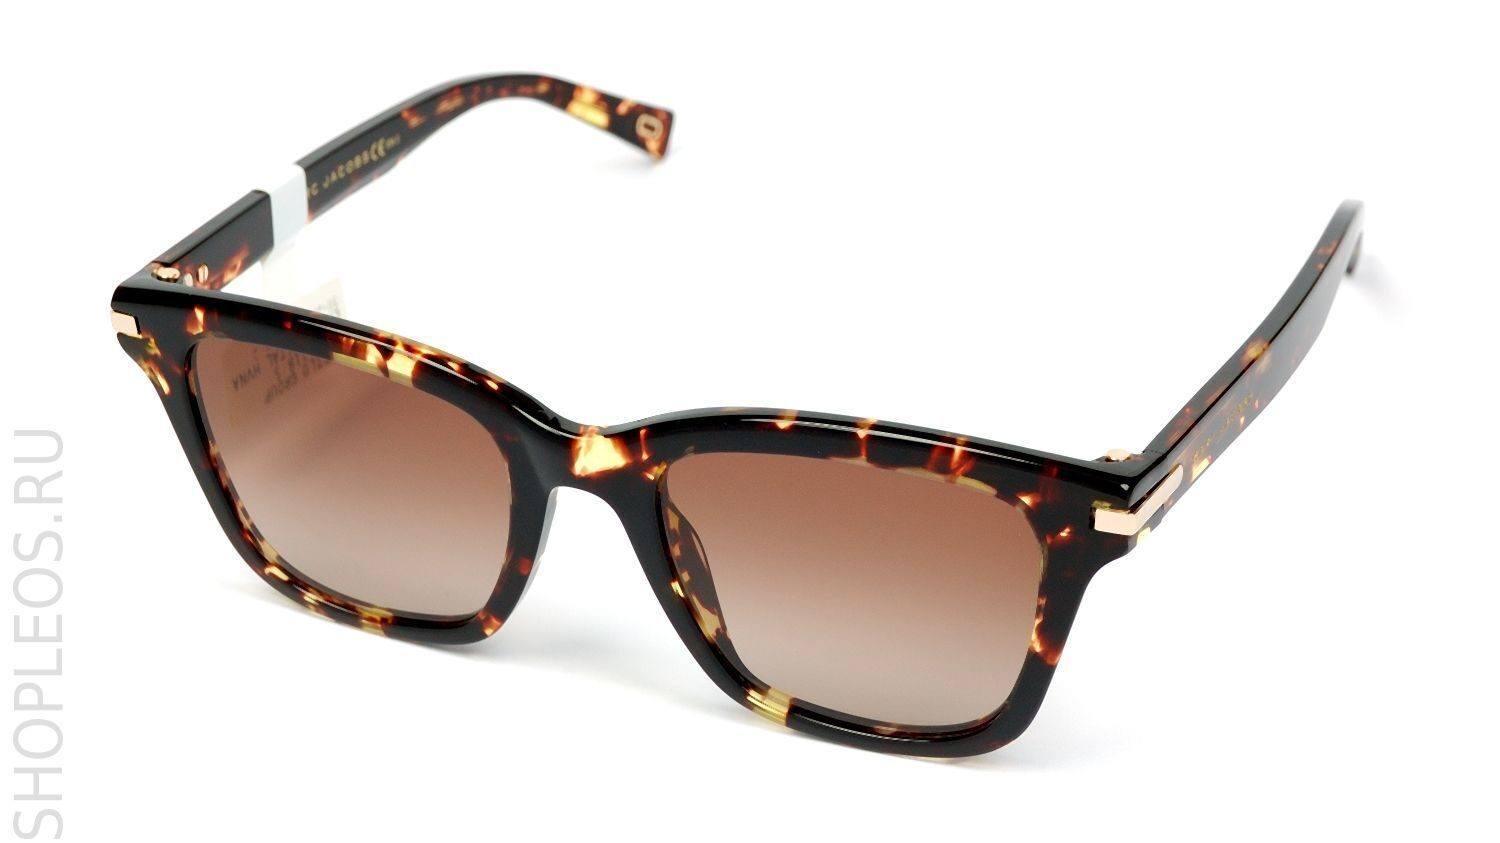 MARC JACOBS WOMAN MARC 218/S LWP